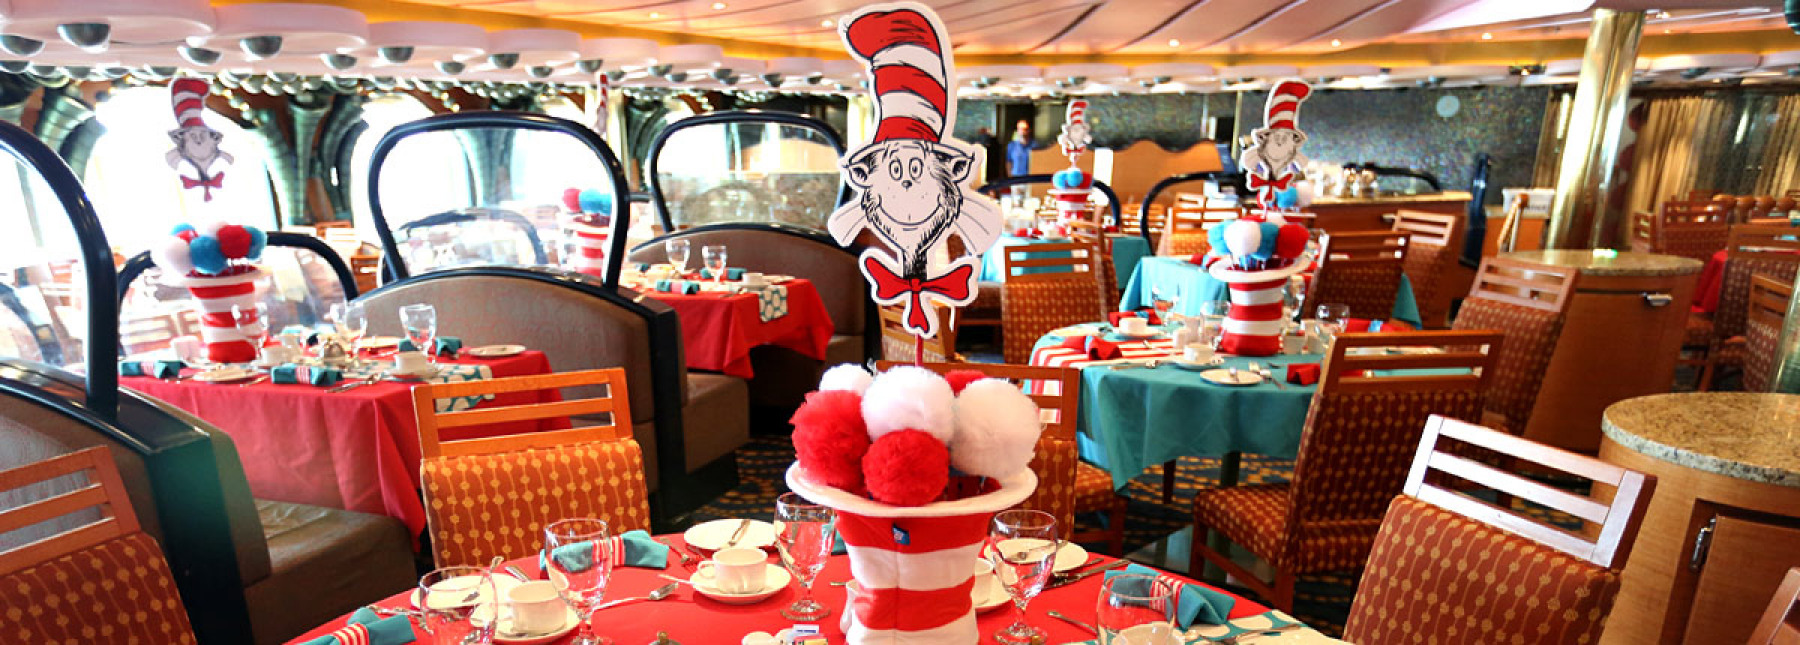 Carnival Cruise Lines Carnival Conquest Interior Green Eggs and Ham Breakfast.jpg